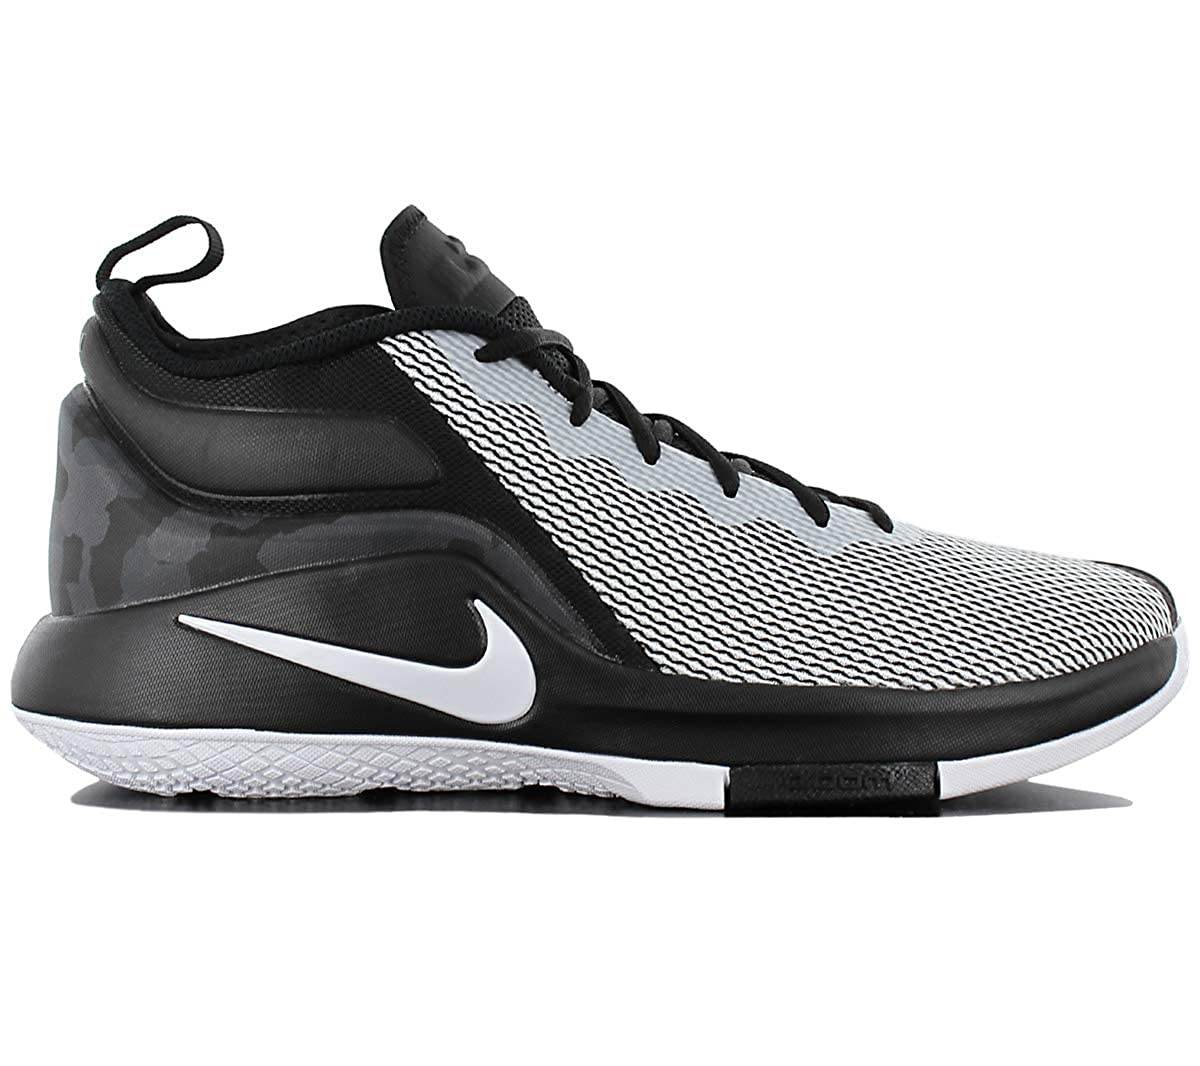 hot sale online 5b4a8 5f6f6 ... reduced nike mens lebron witness ii basketball shoe black white 14 buy  online at low prices